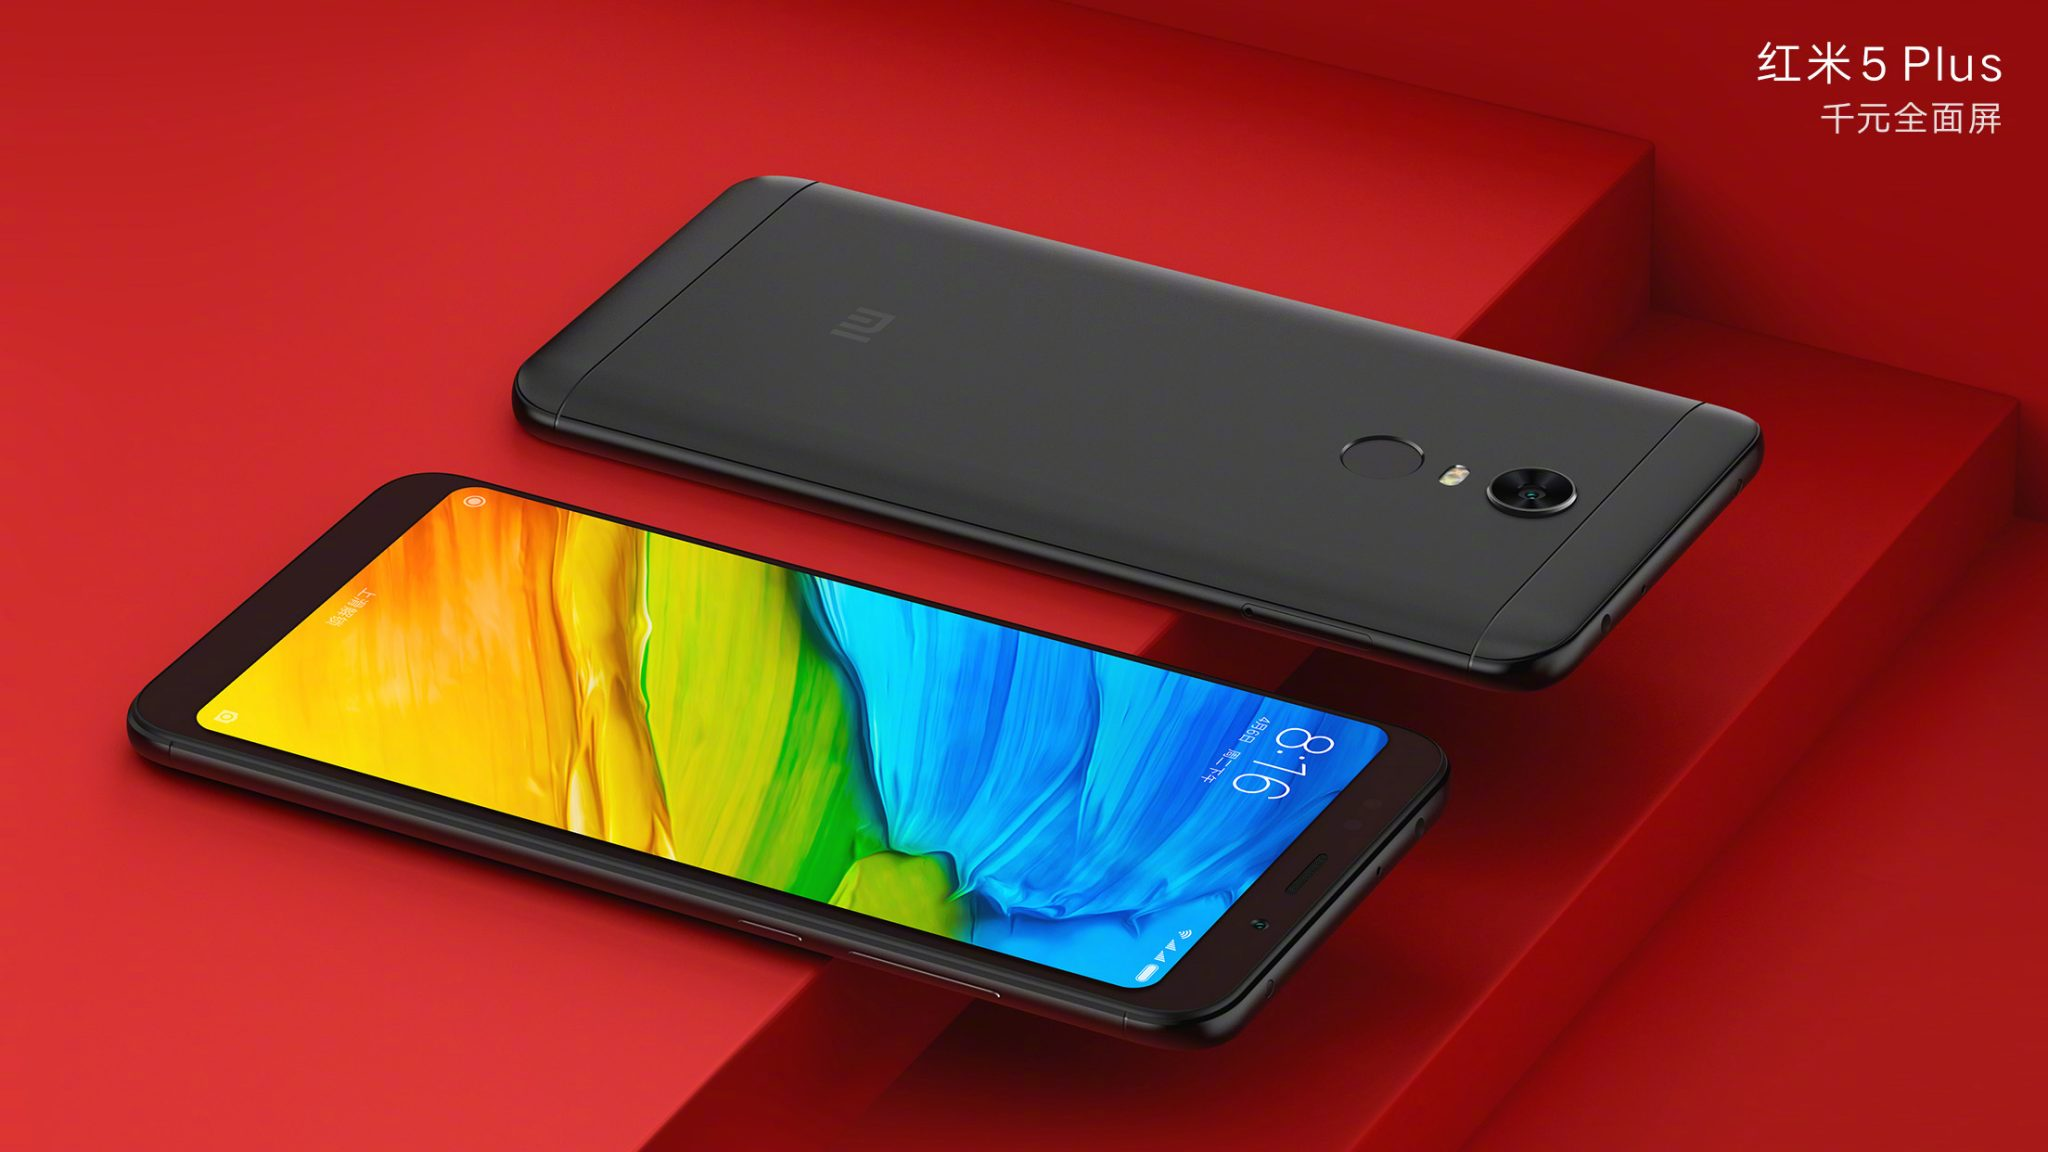 Xiaomi Redmi 5 & Redmi 5 Plus - Check out the official renders 2